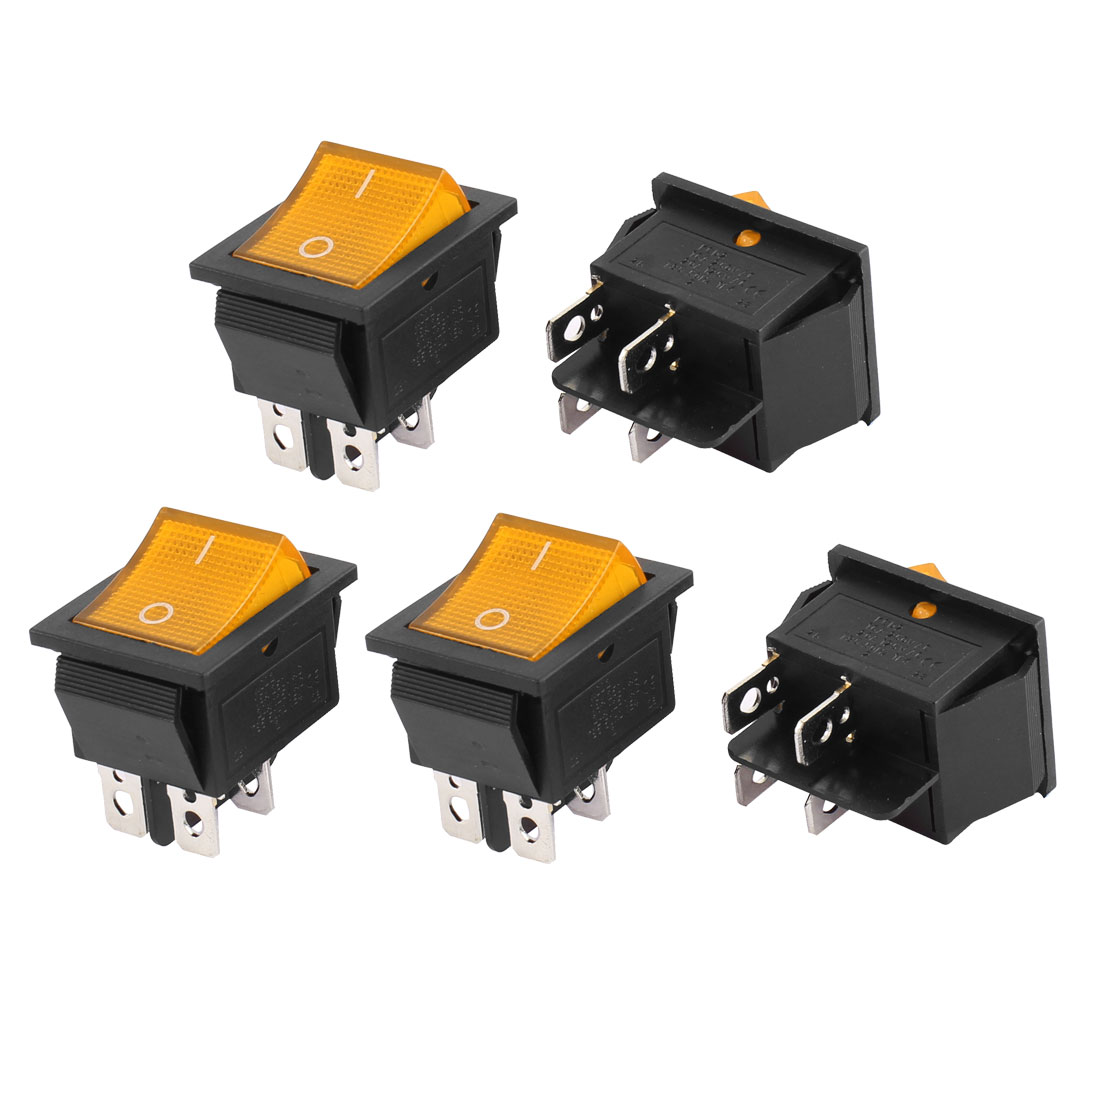 5pcs AC 110-220V Yellow Light 2 Position Snap In DPST Latching Car Boat Rocker Switch